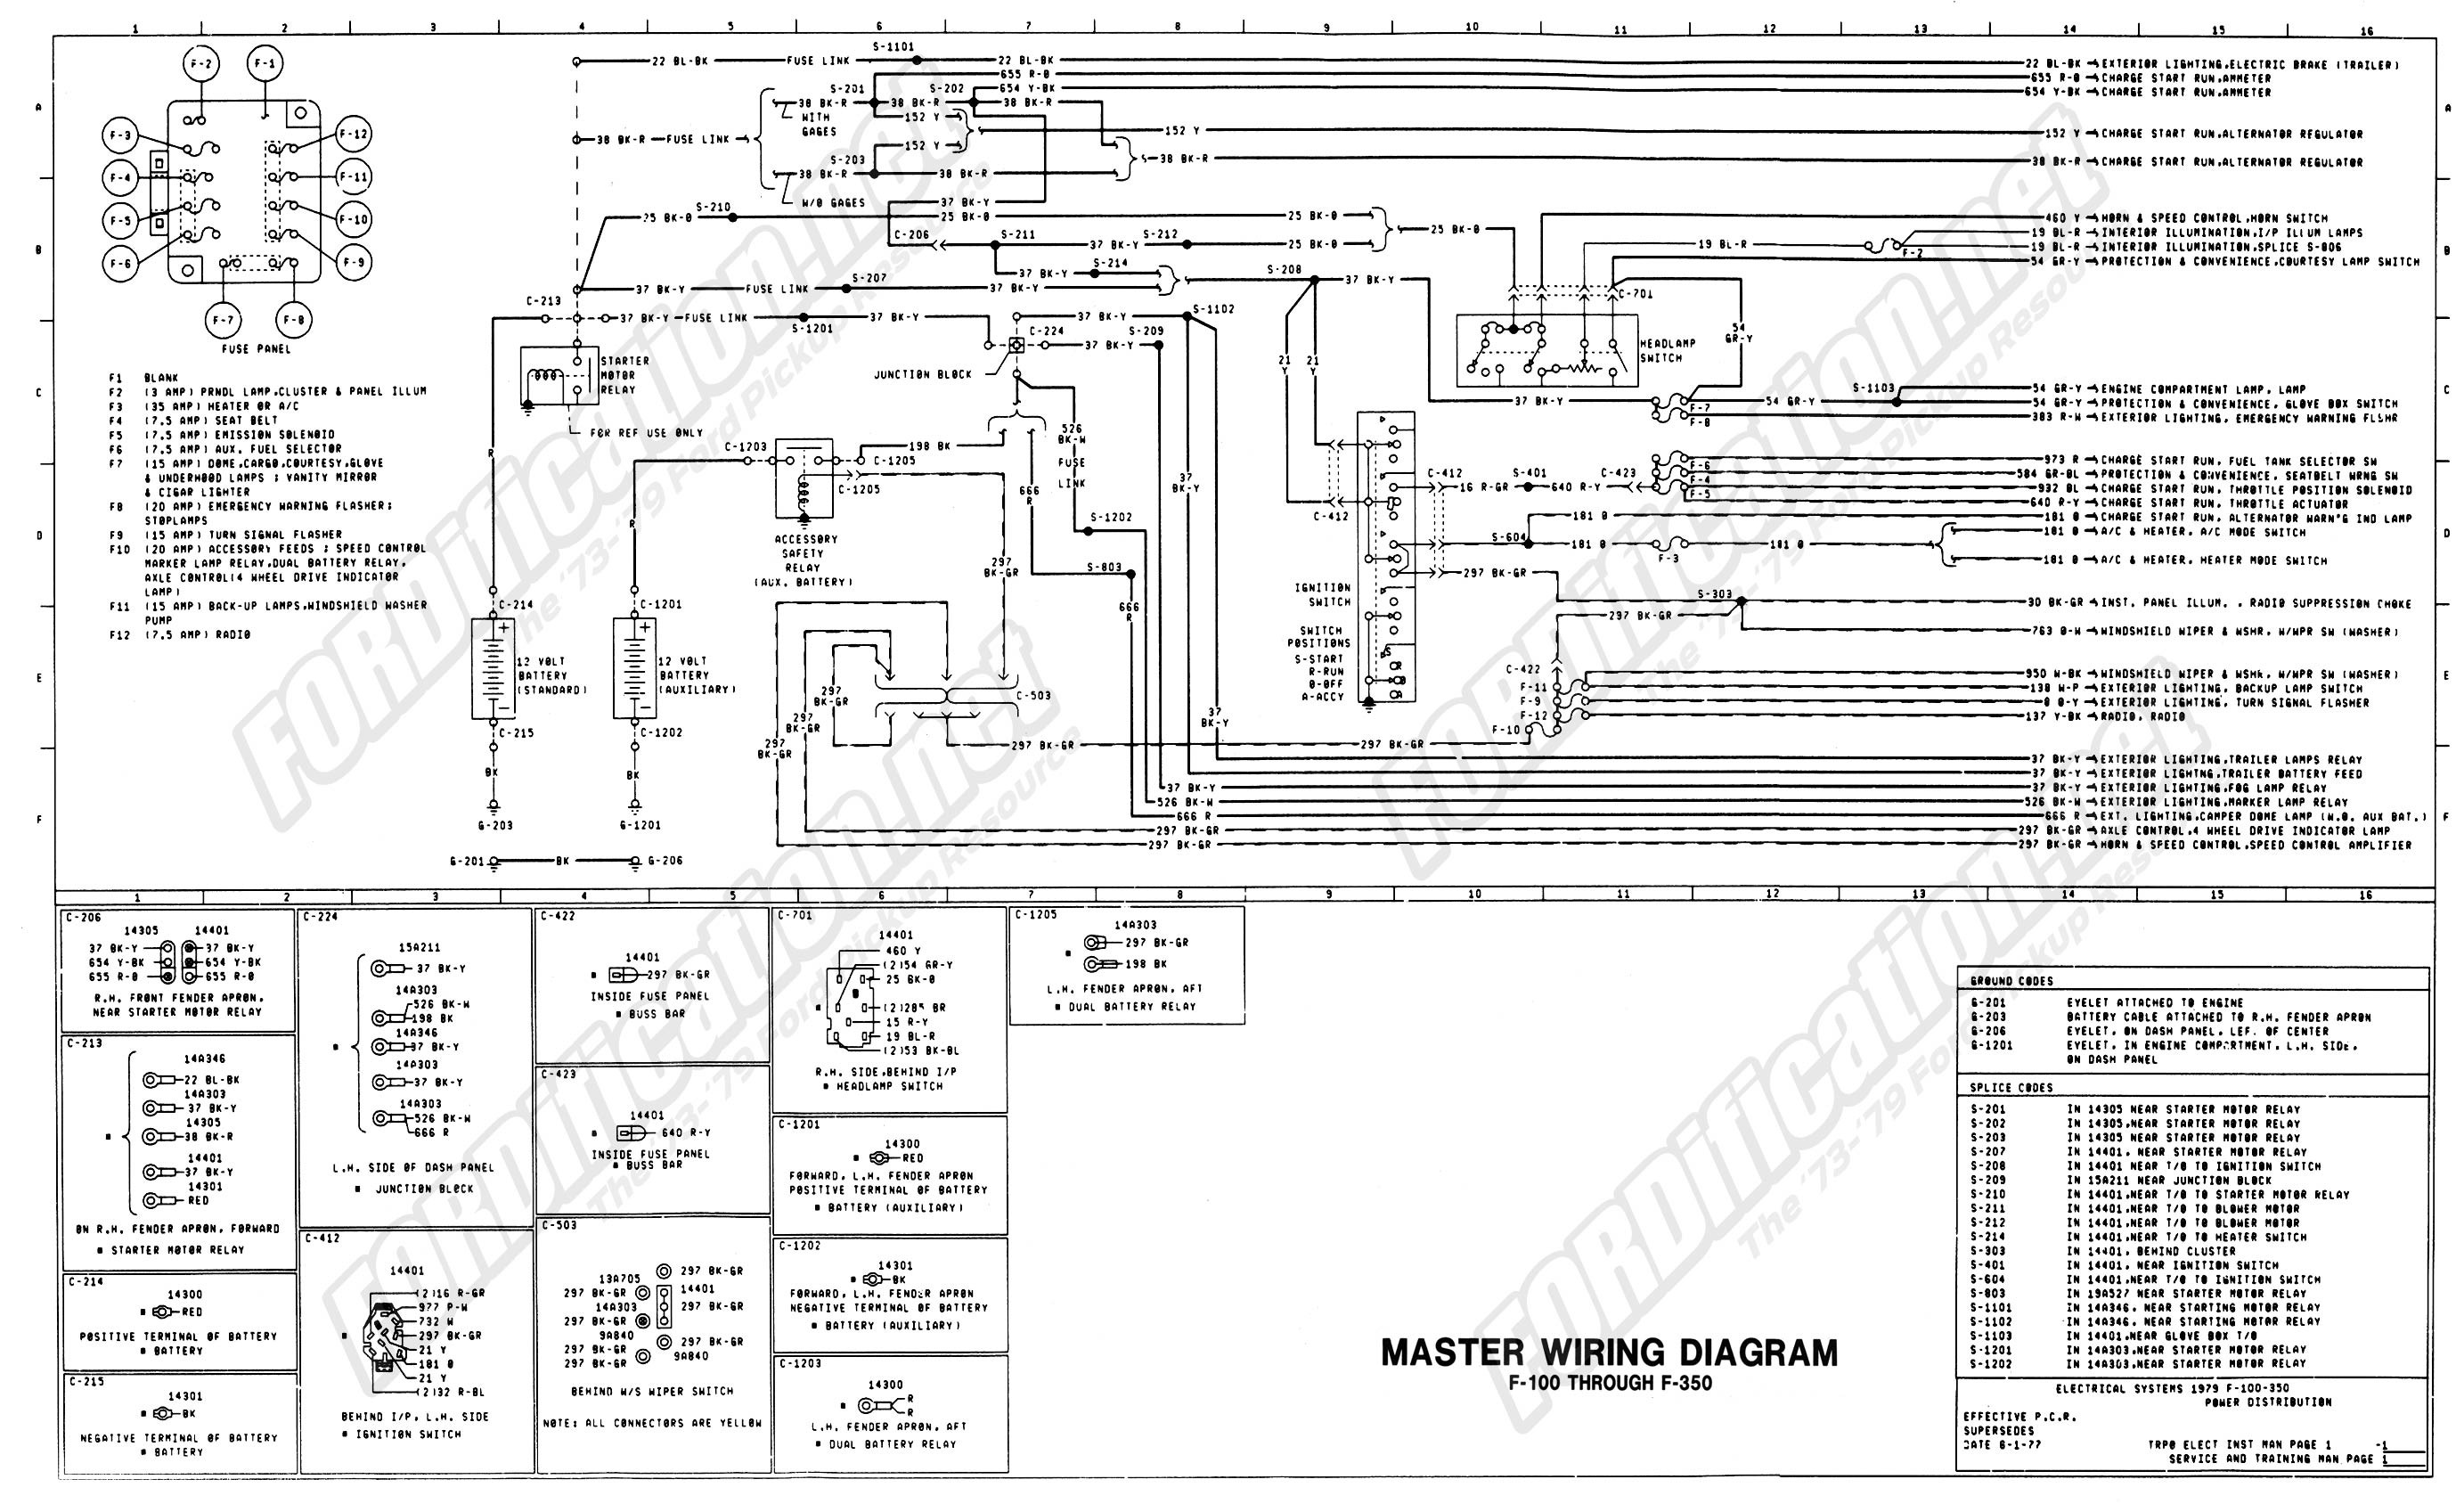 Torino Fuse Diagram Wiring Diagram Schematics Ford Ranger Fuse Box 1970 Ford  Torino Fuse Box Diagram